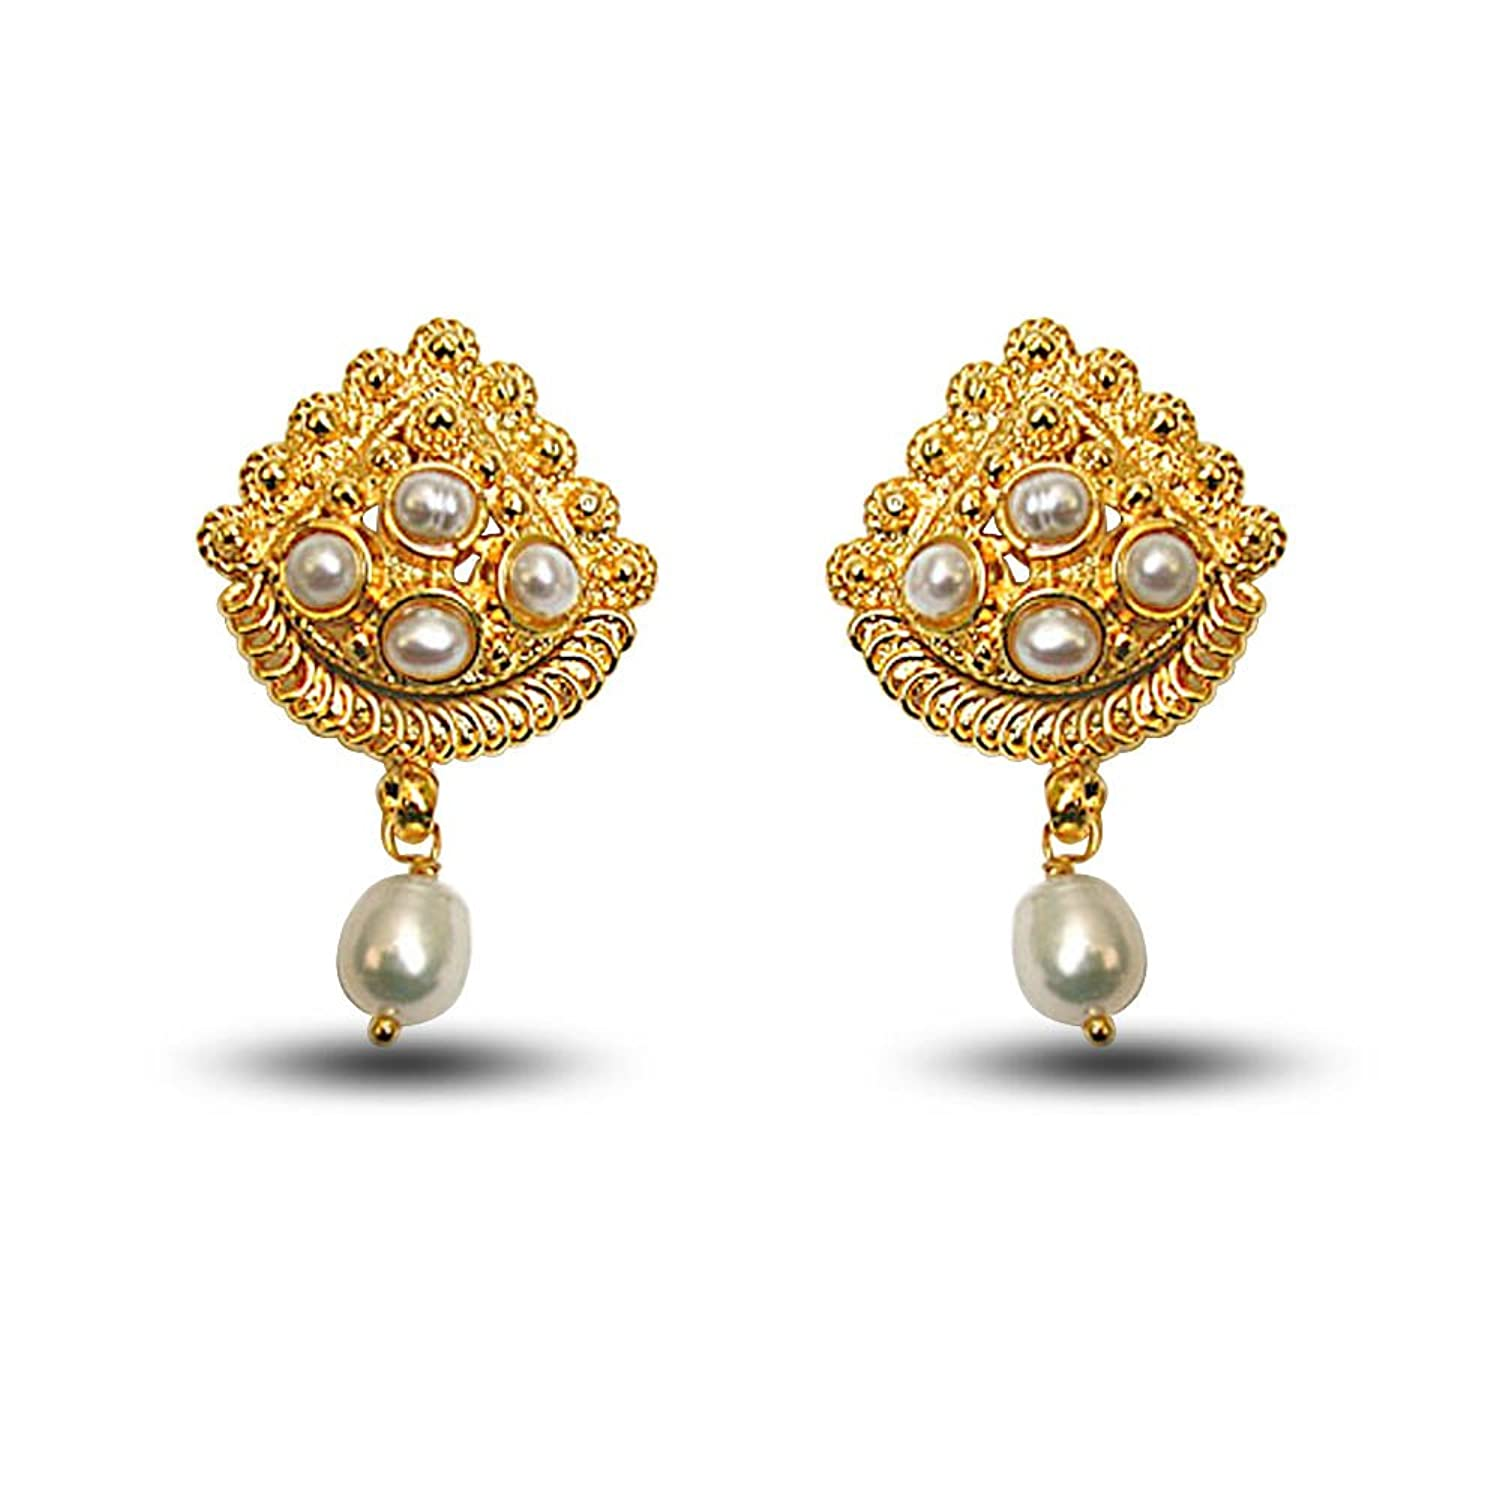 Buy Surat Diamonds Gold-Plated Stud Earring For Women Gold - SE140 ...